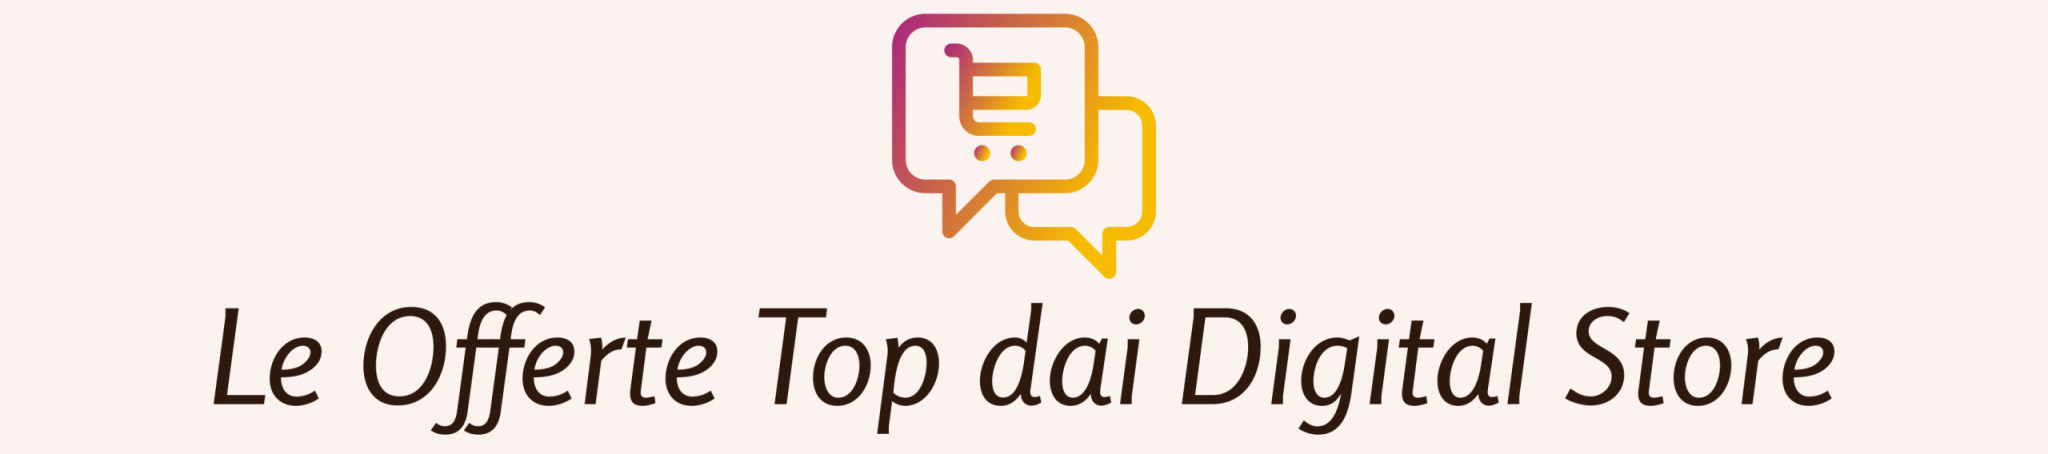 Le Offerte TOP dai Digital Store